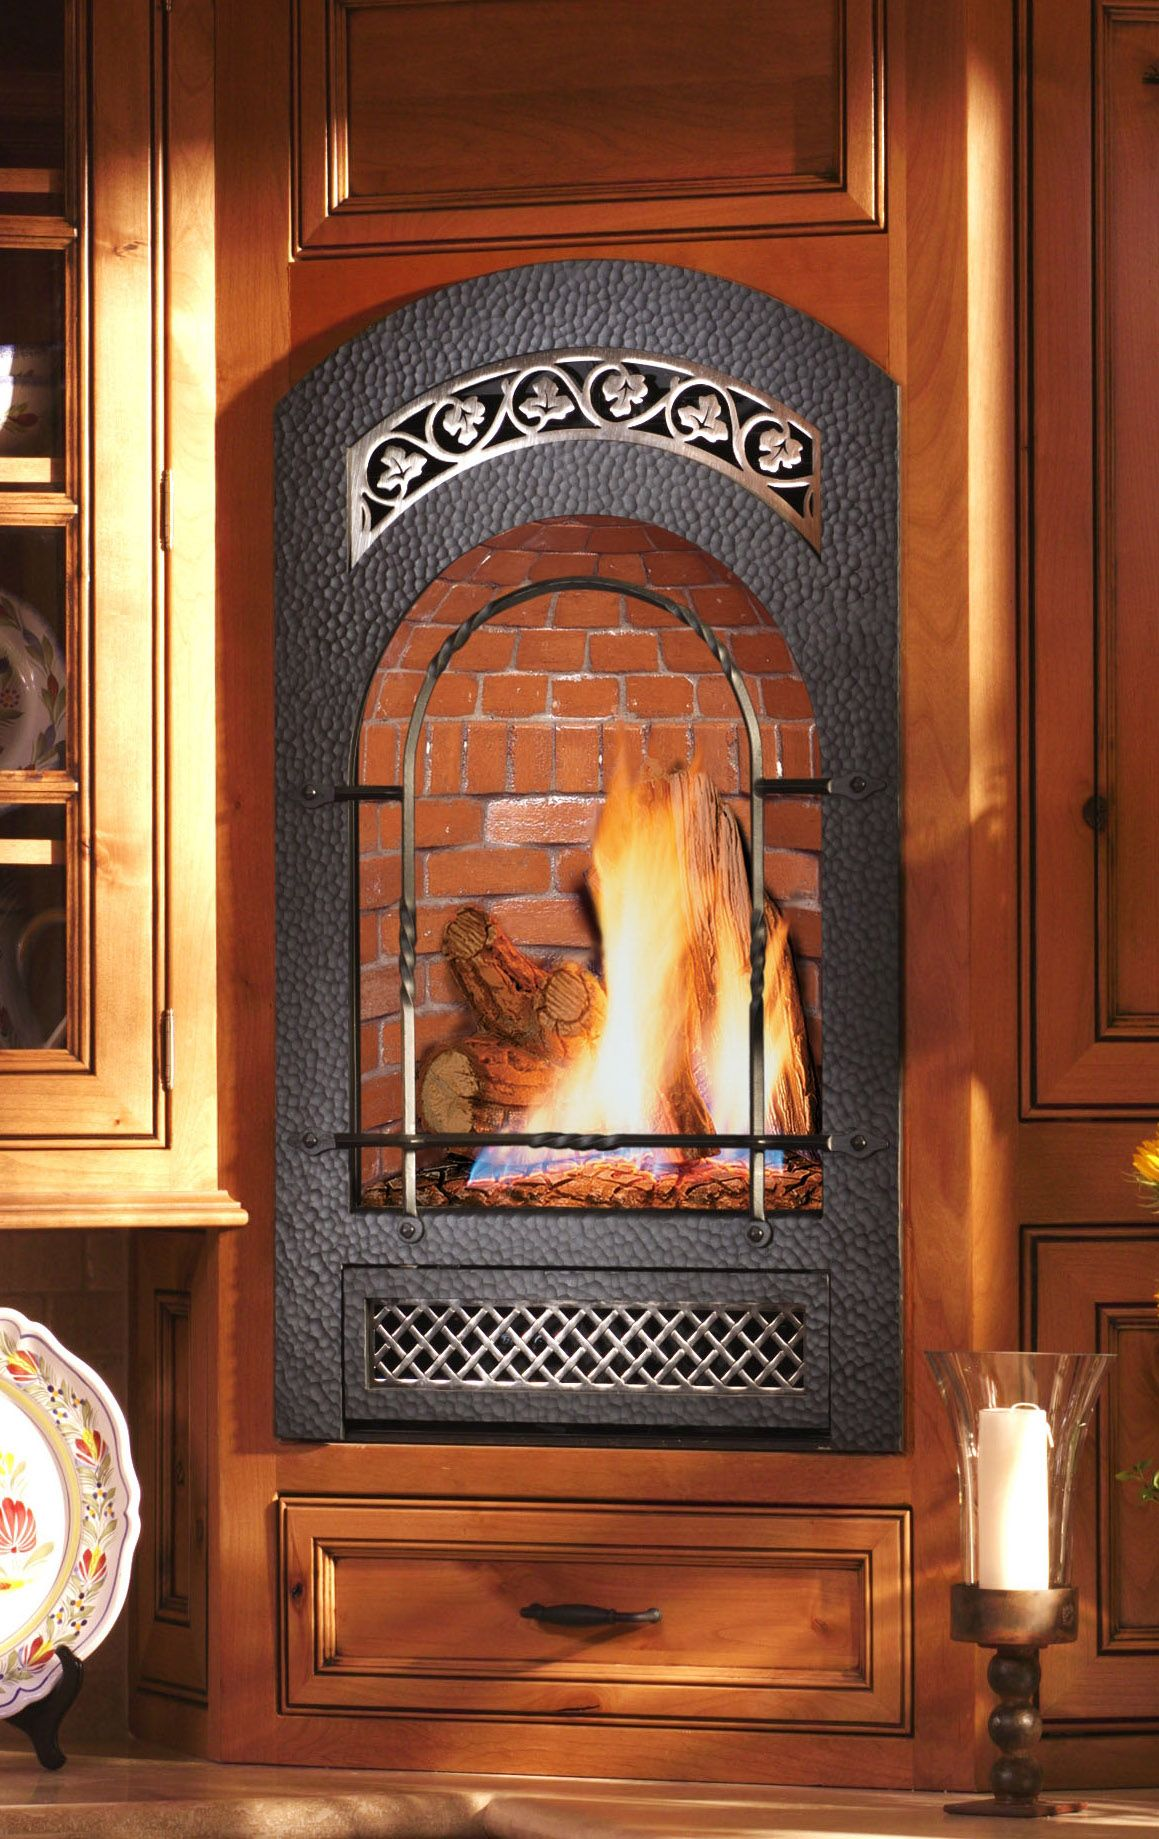 Wall Mounted Natural Gas Fireplace Lovely Small Wall Mounted Gas Fireplace Great for Bedrooms & Baths